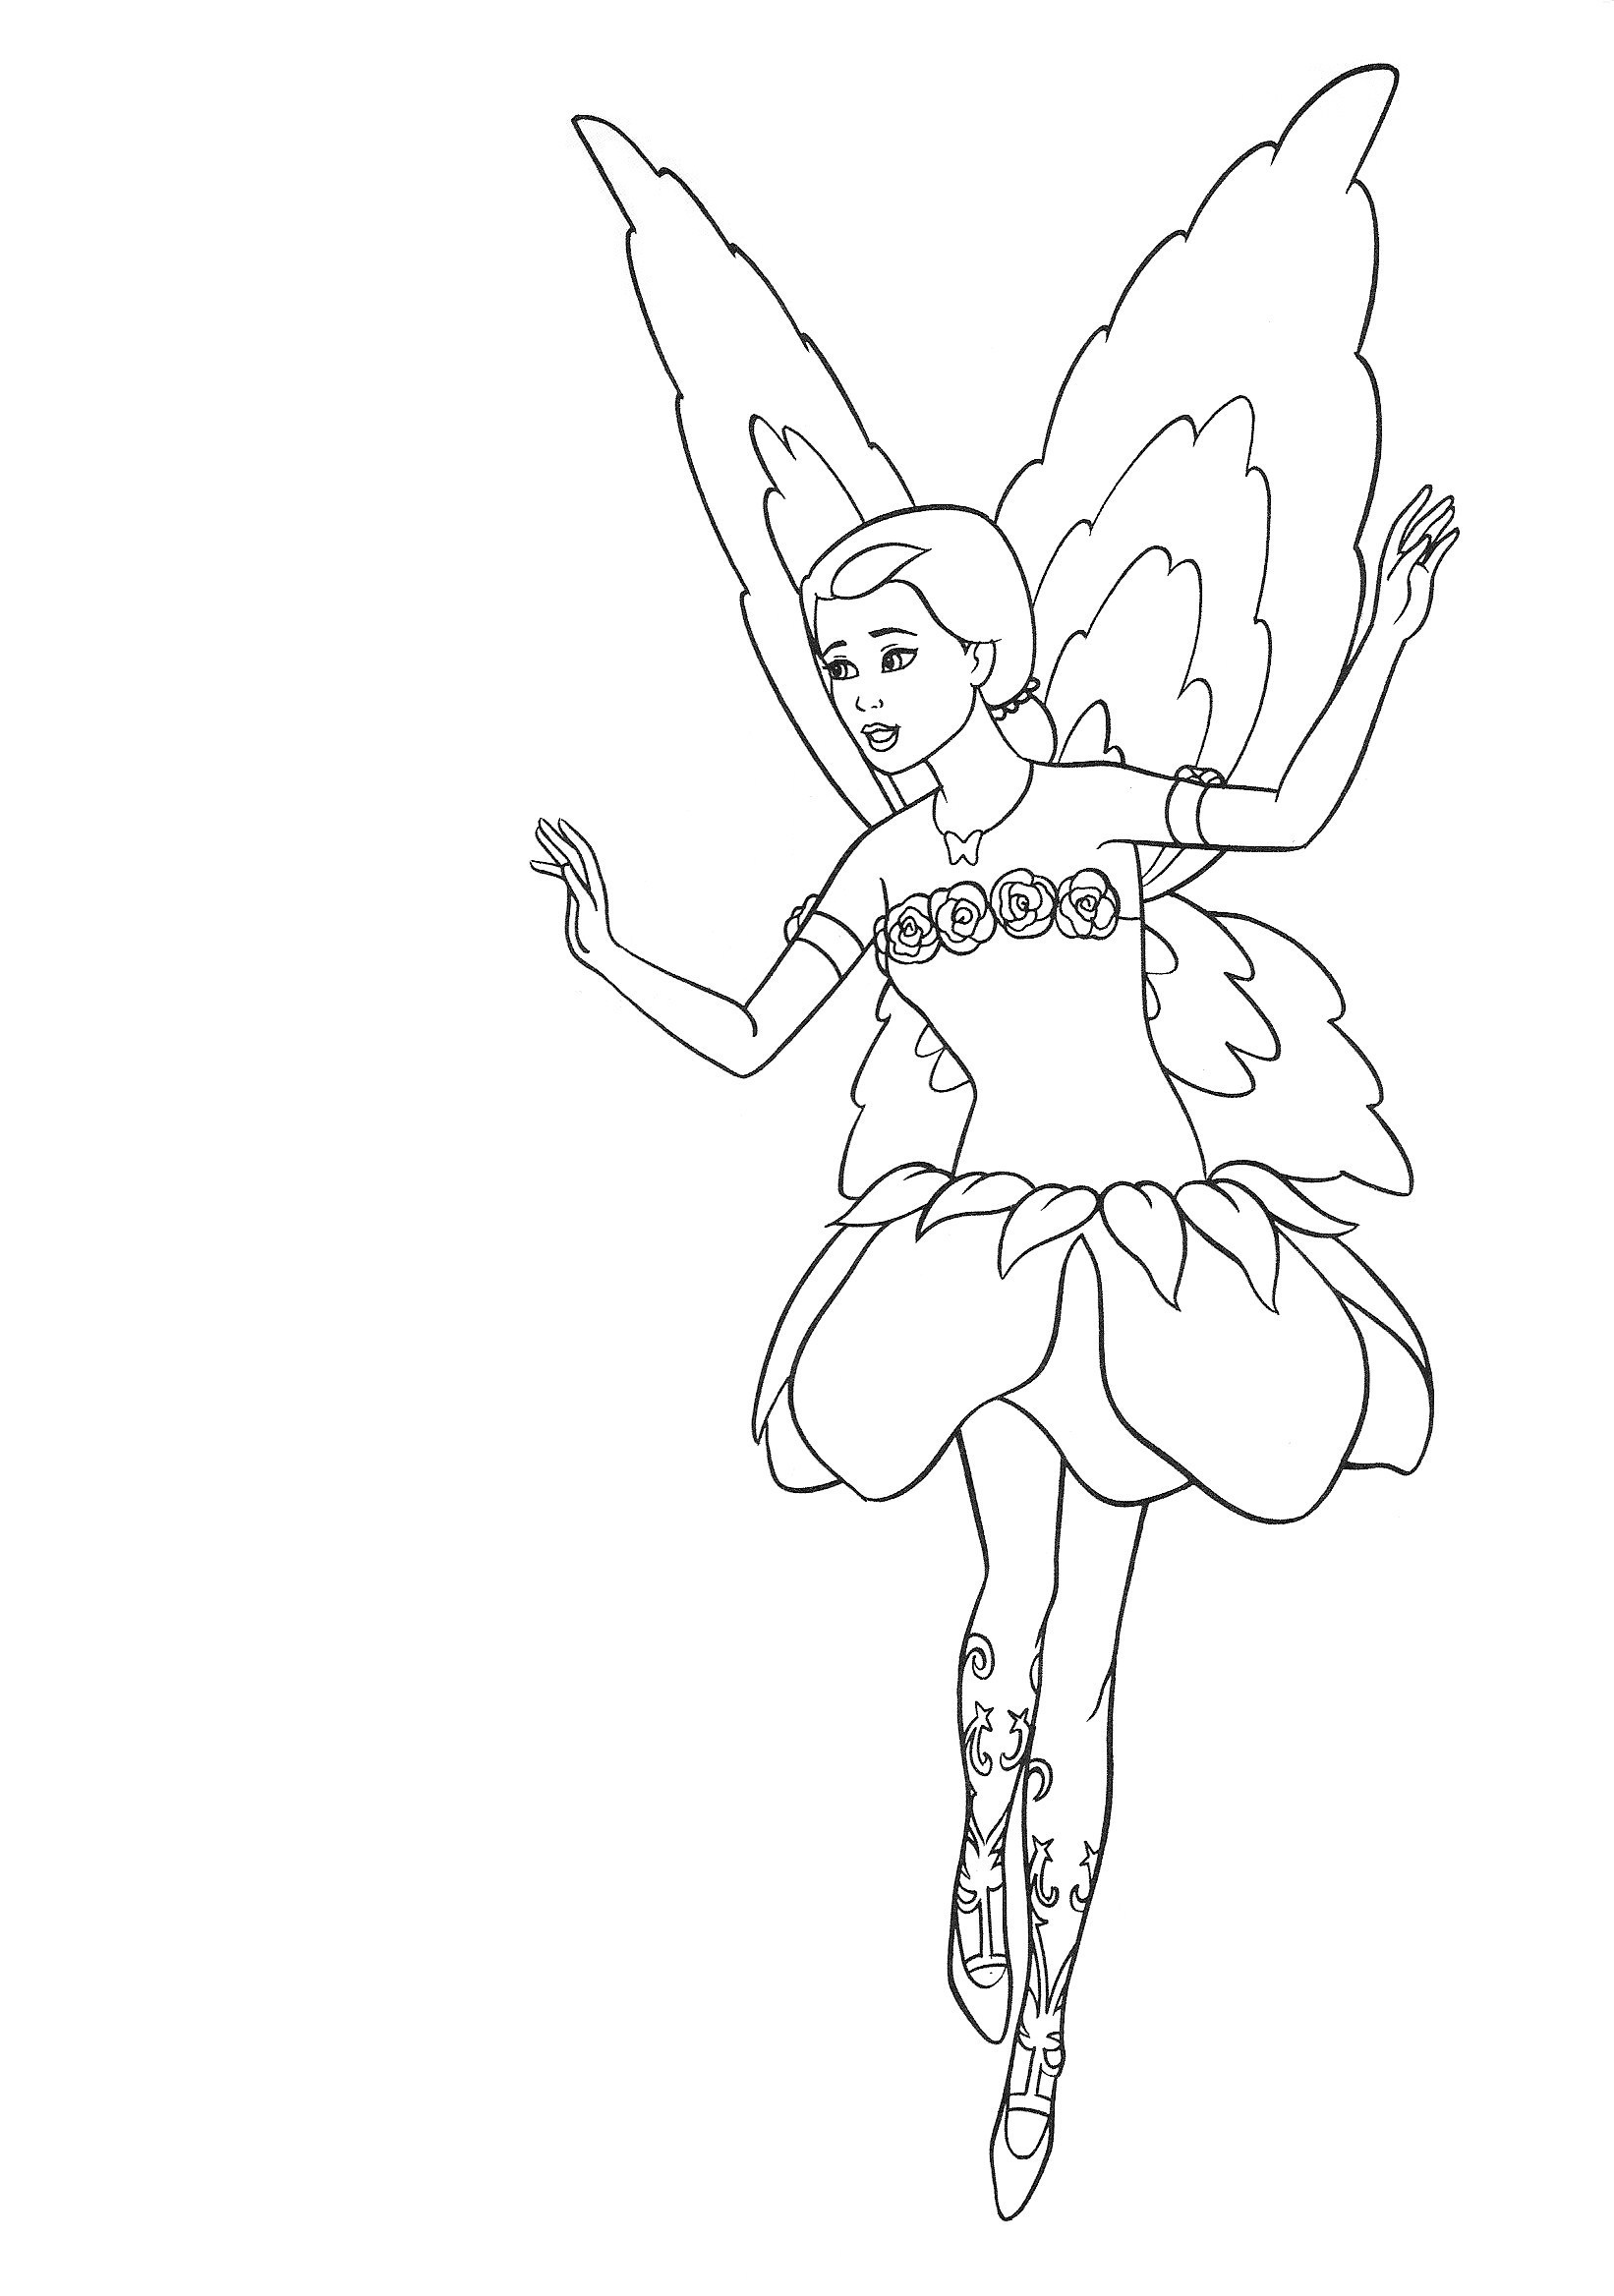 barbie princess alexa coloring pages barbie princess alexa coloring pages 6